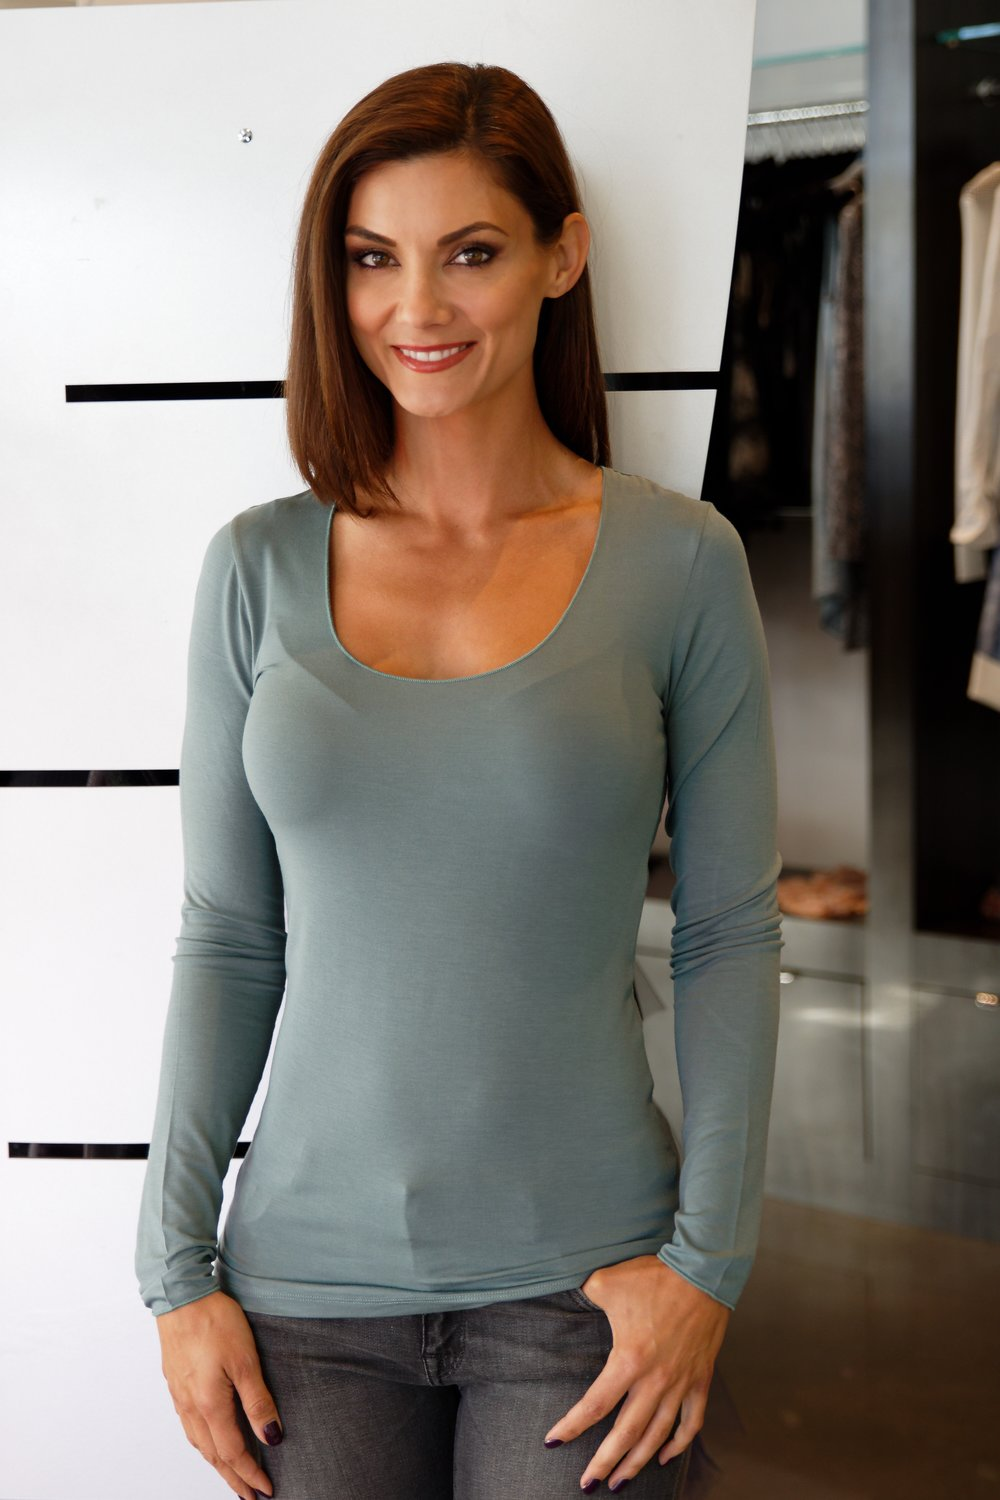 Soft Touch Marrow Edge Long Sleeve Scoop Neck in Skyline Blue